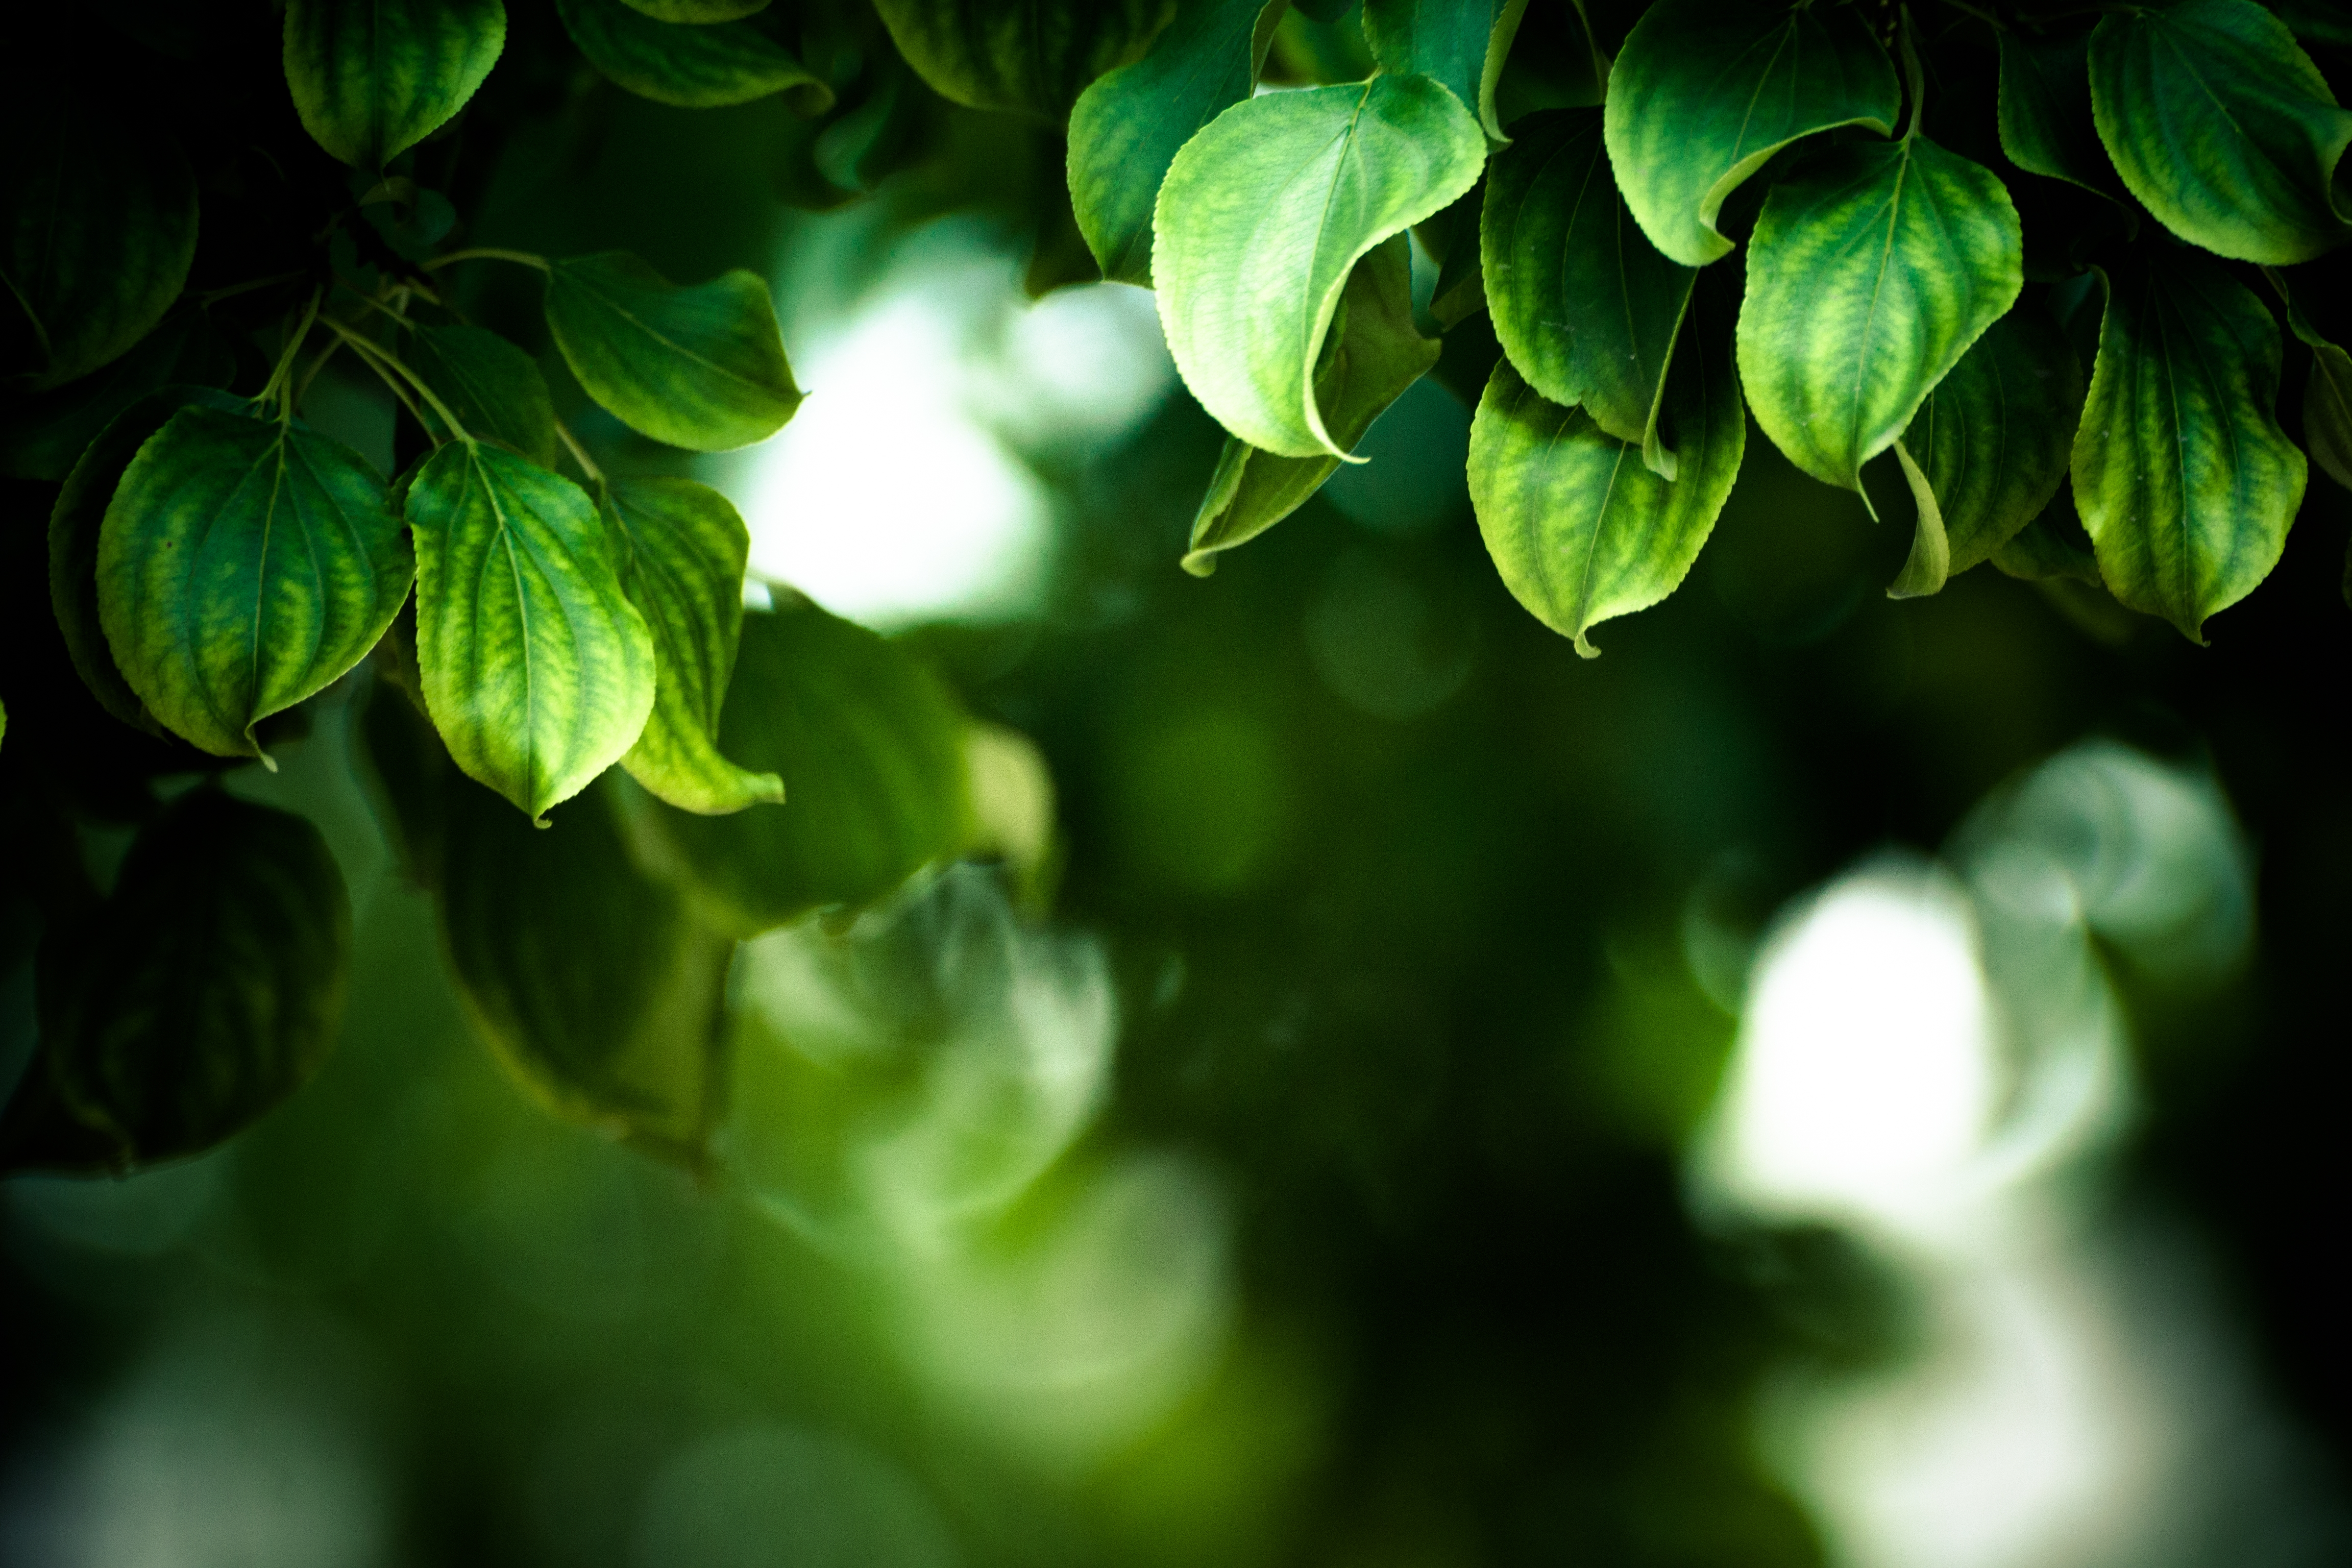 119332 download wallpaper Macro, Branches, Leaves screensavers and pictures for free